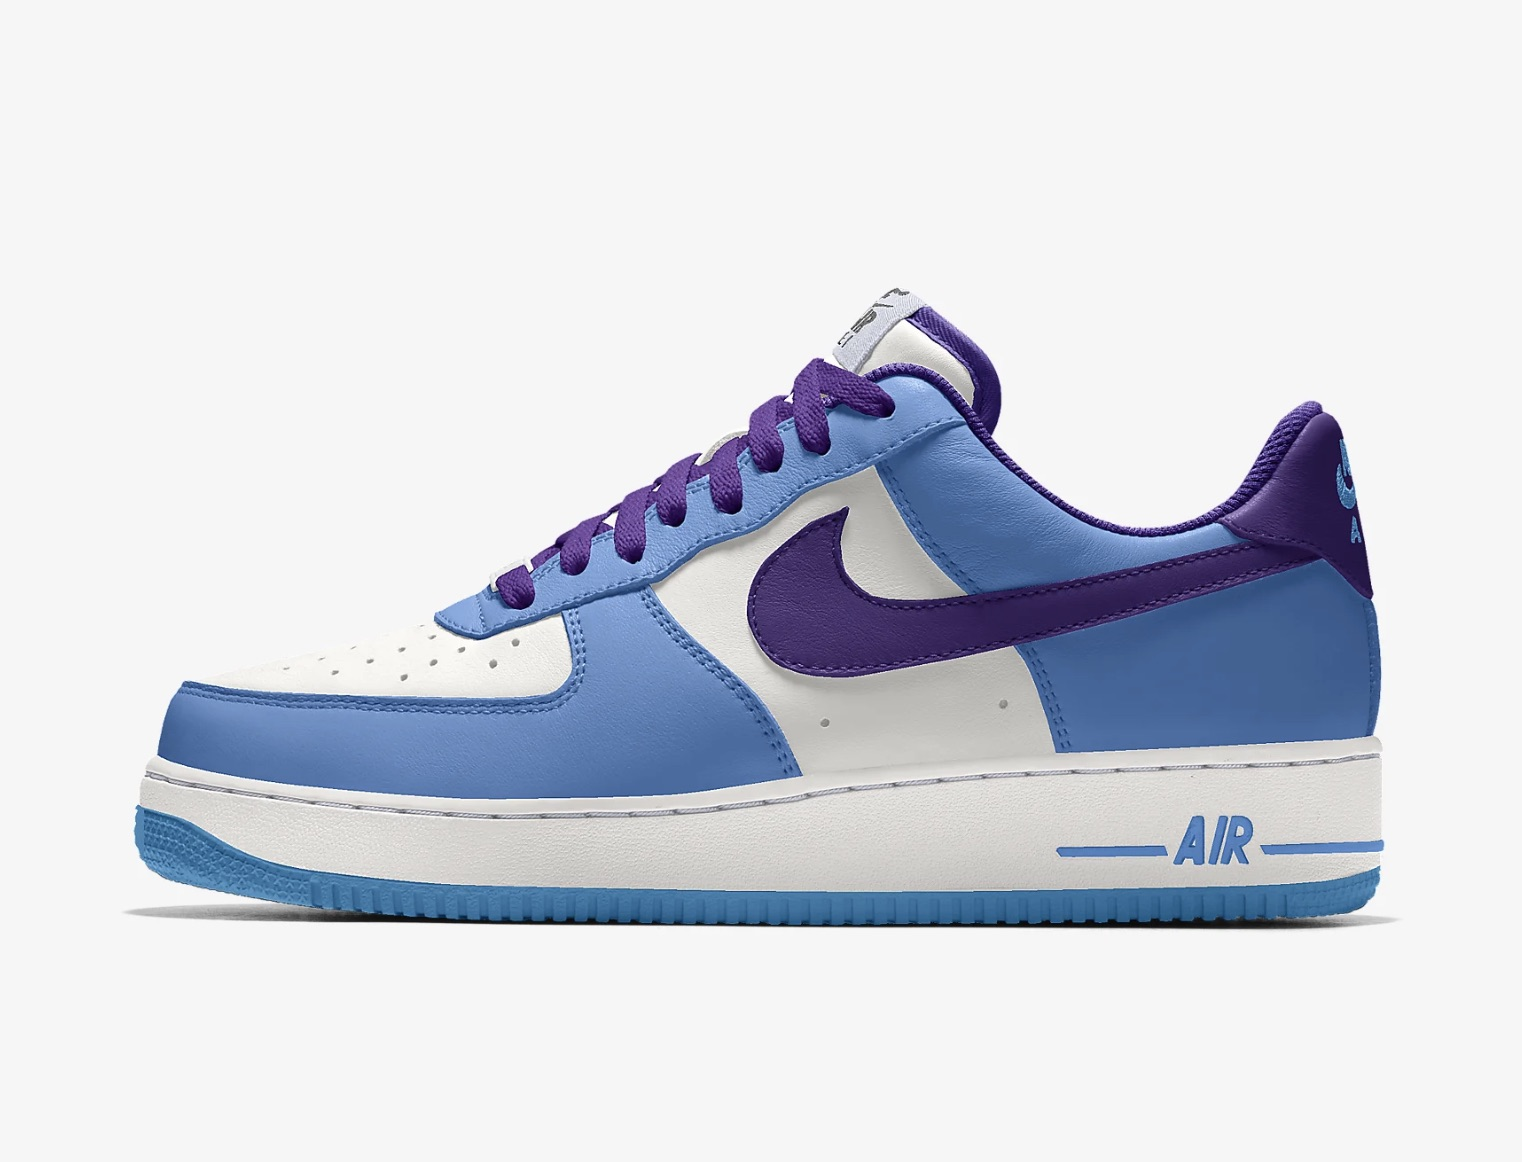 Air Force 1 By you (personalizables)